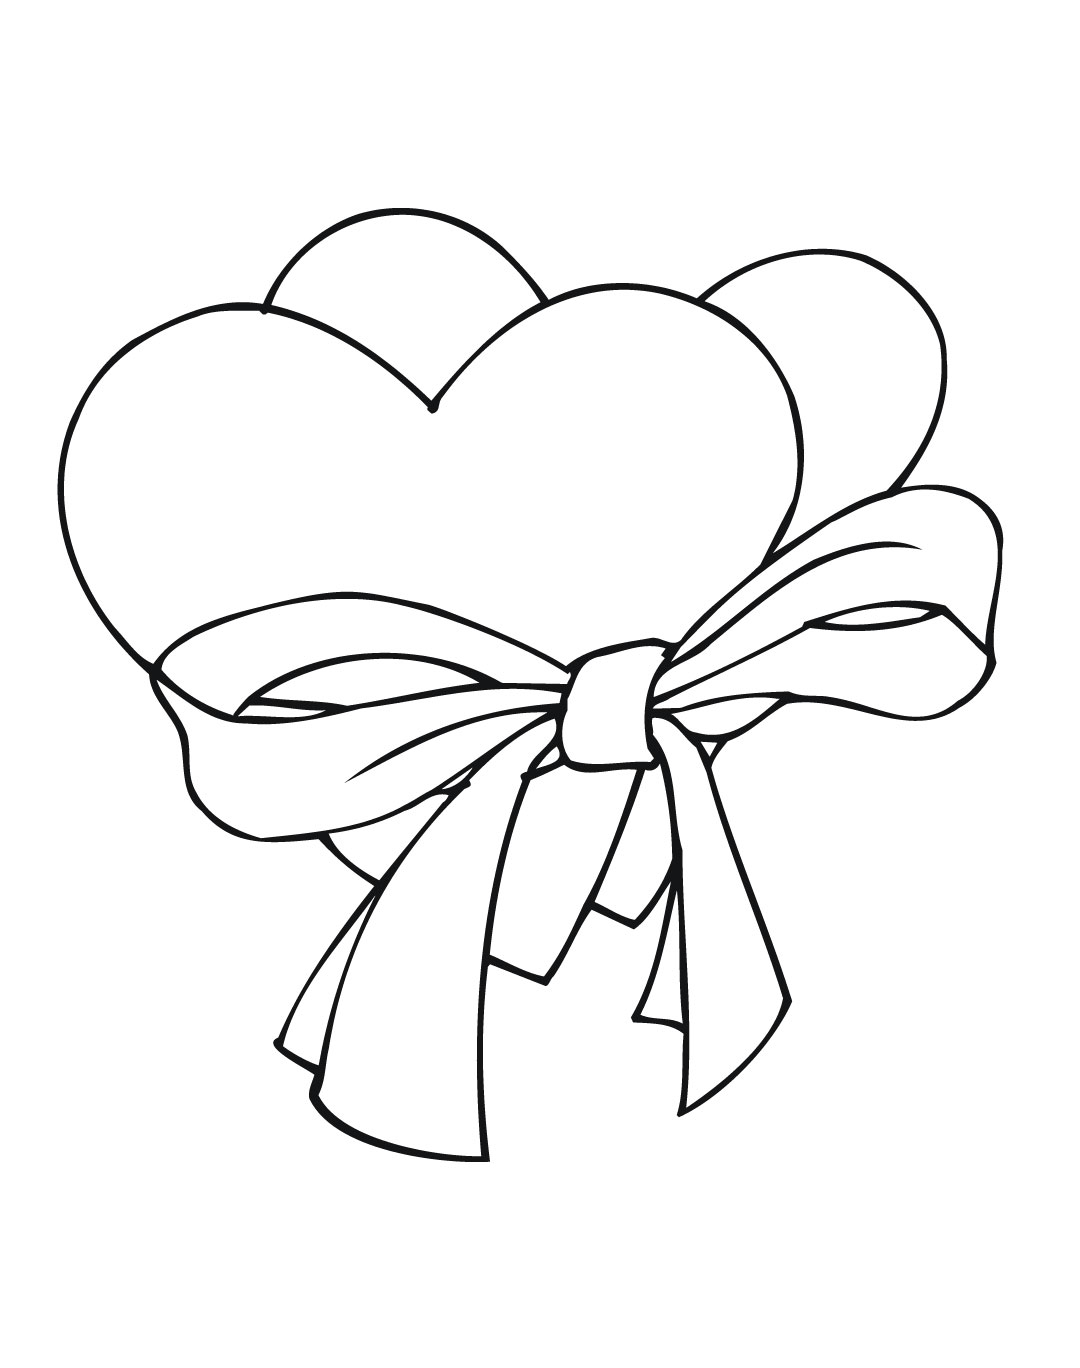 heart coloring pages 10 coloring kids